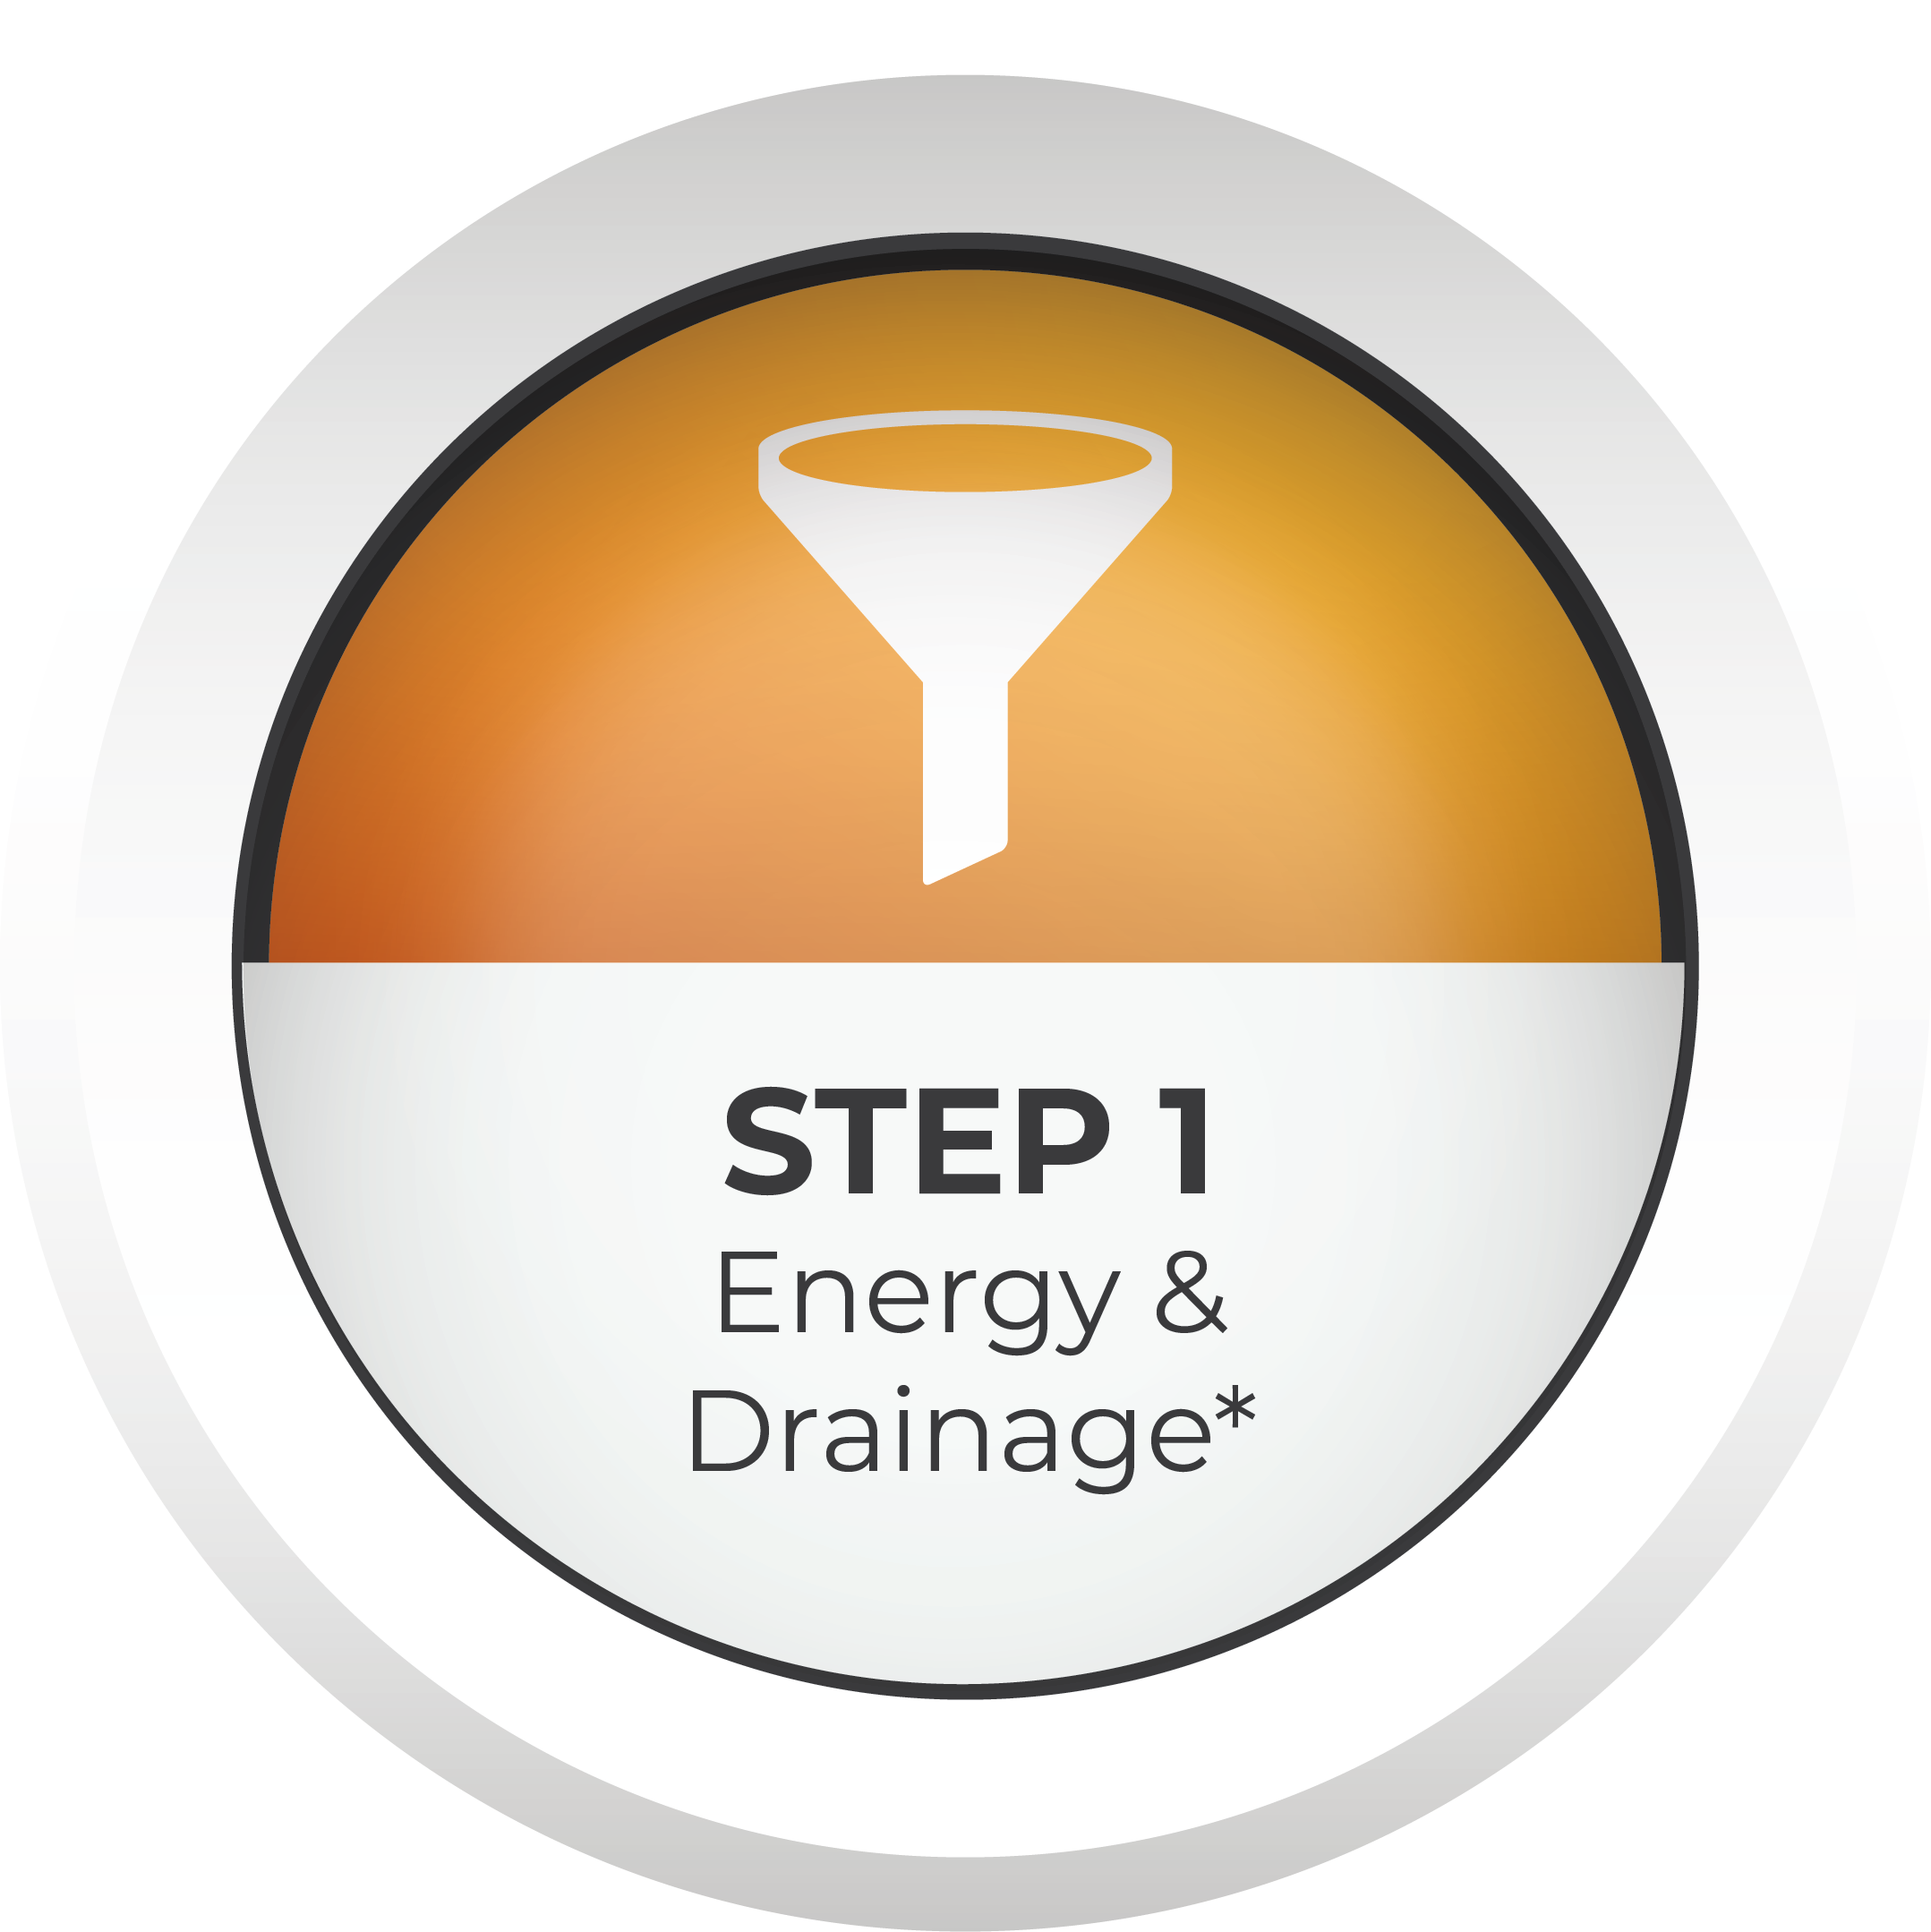 step 1 Energy and drainage icon